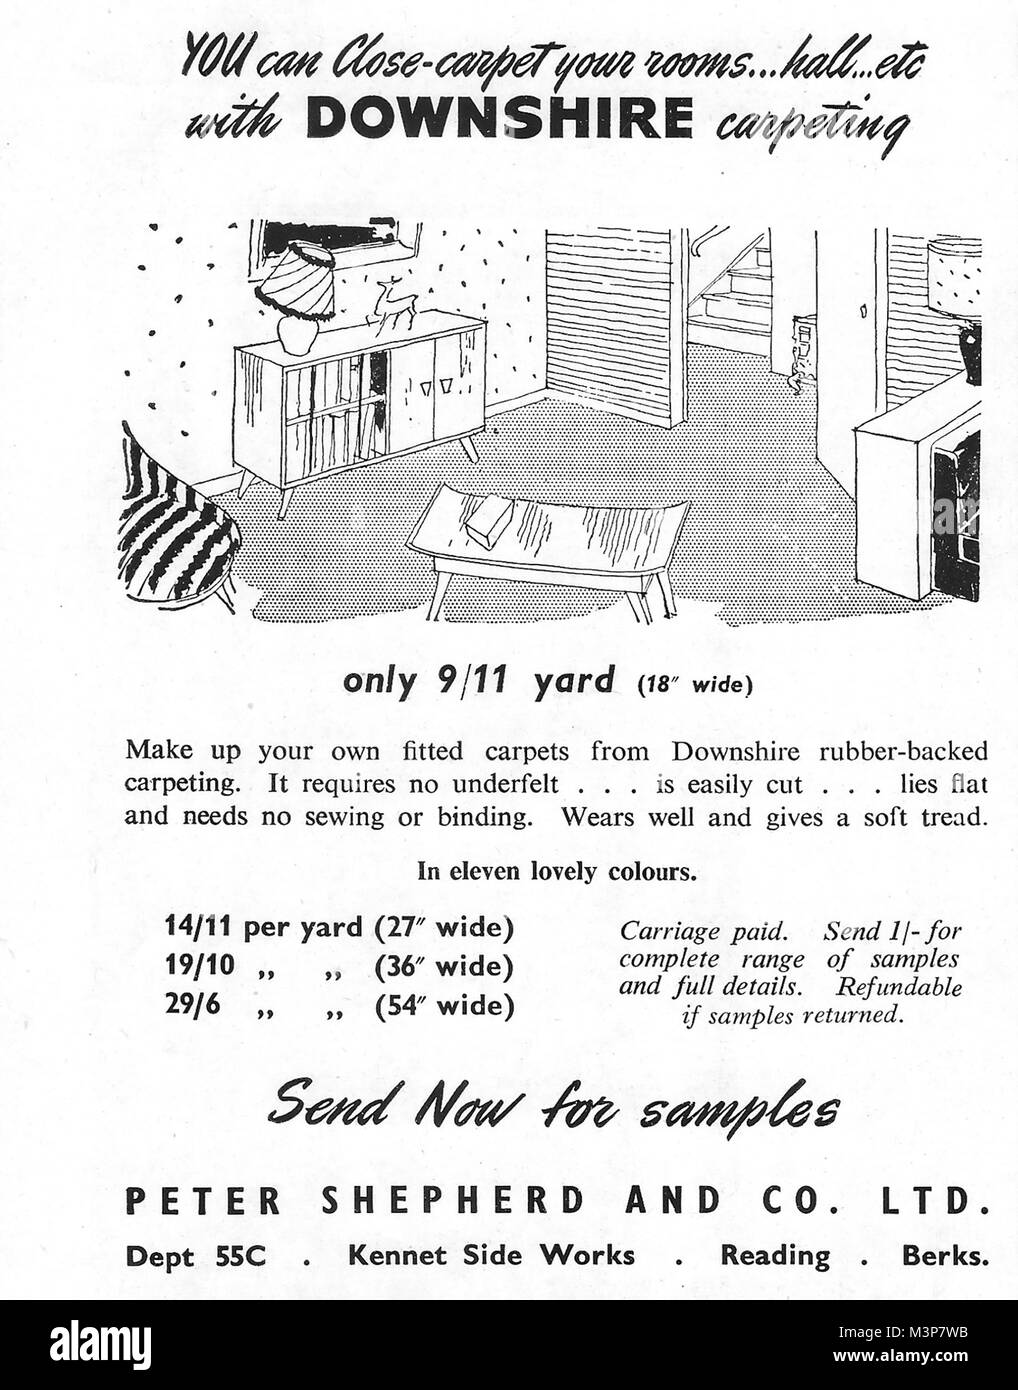 Downshire carpeting carpet advert, advertising in Country Life magazine UK 1951 - Stock Image